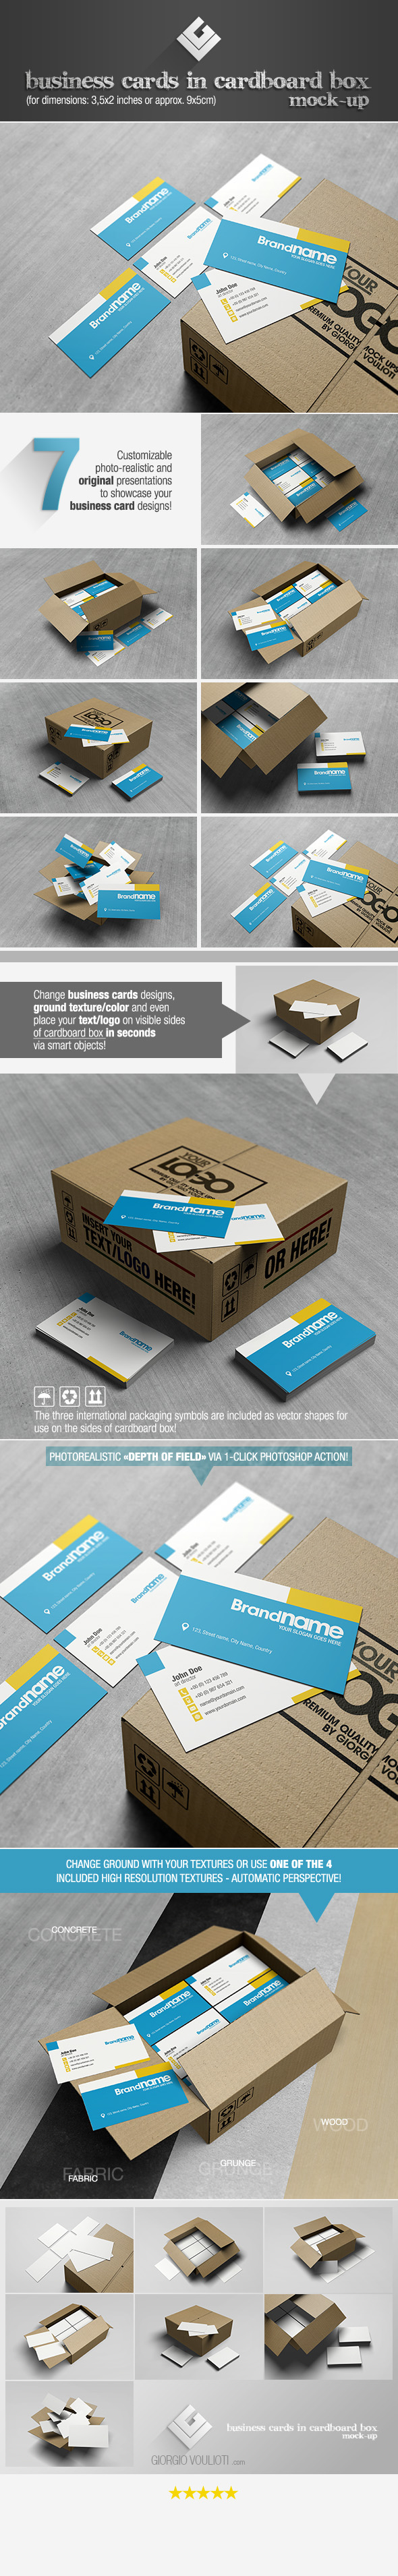 business cards in cardboard box mock up on behance